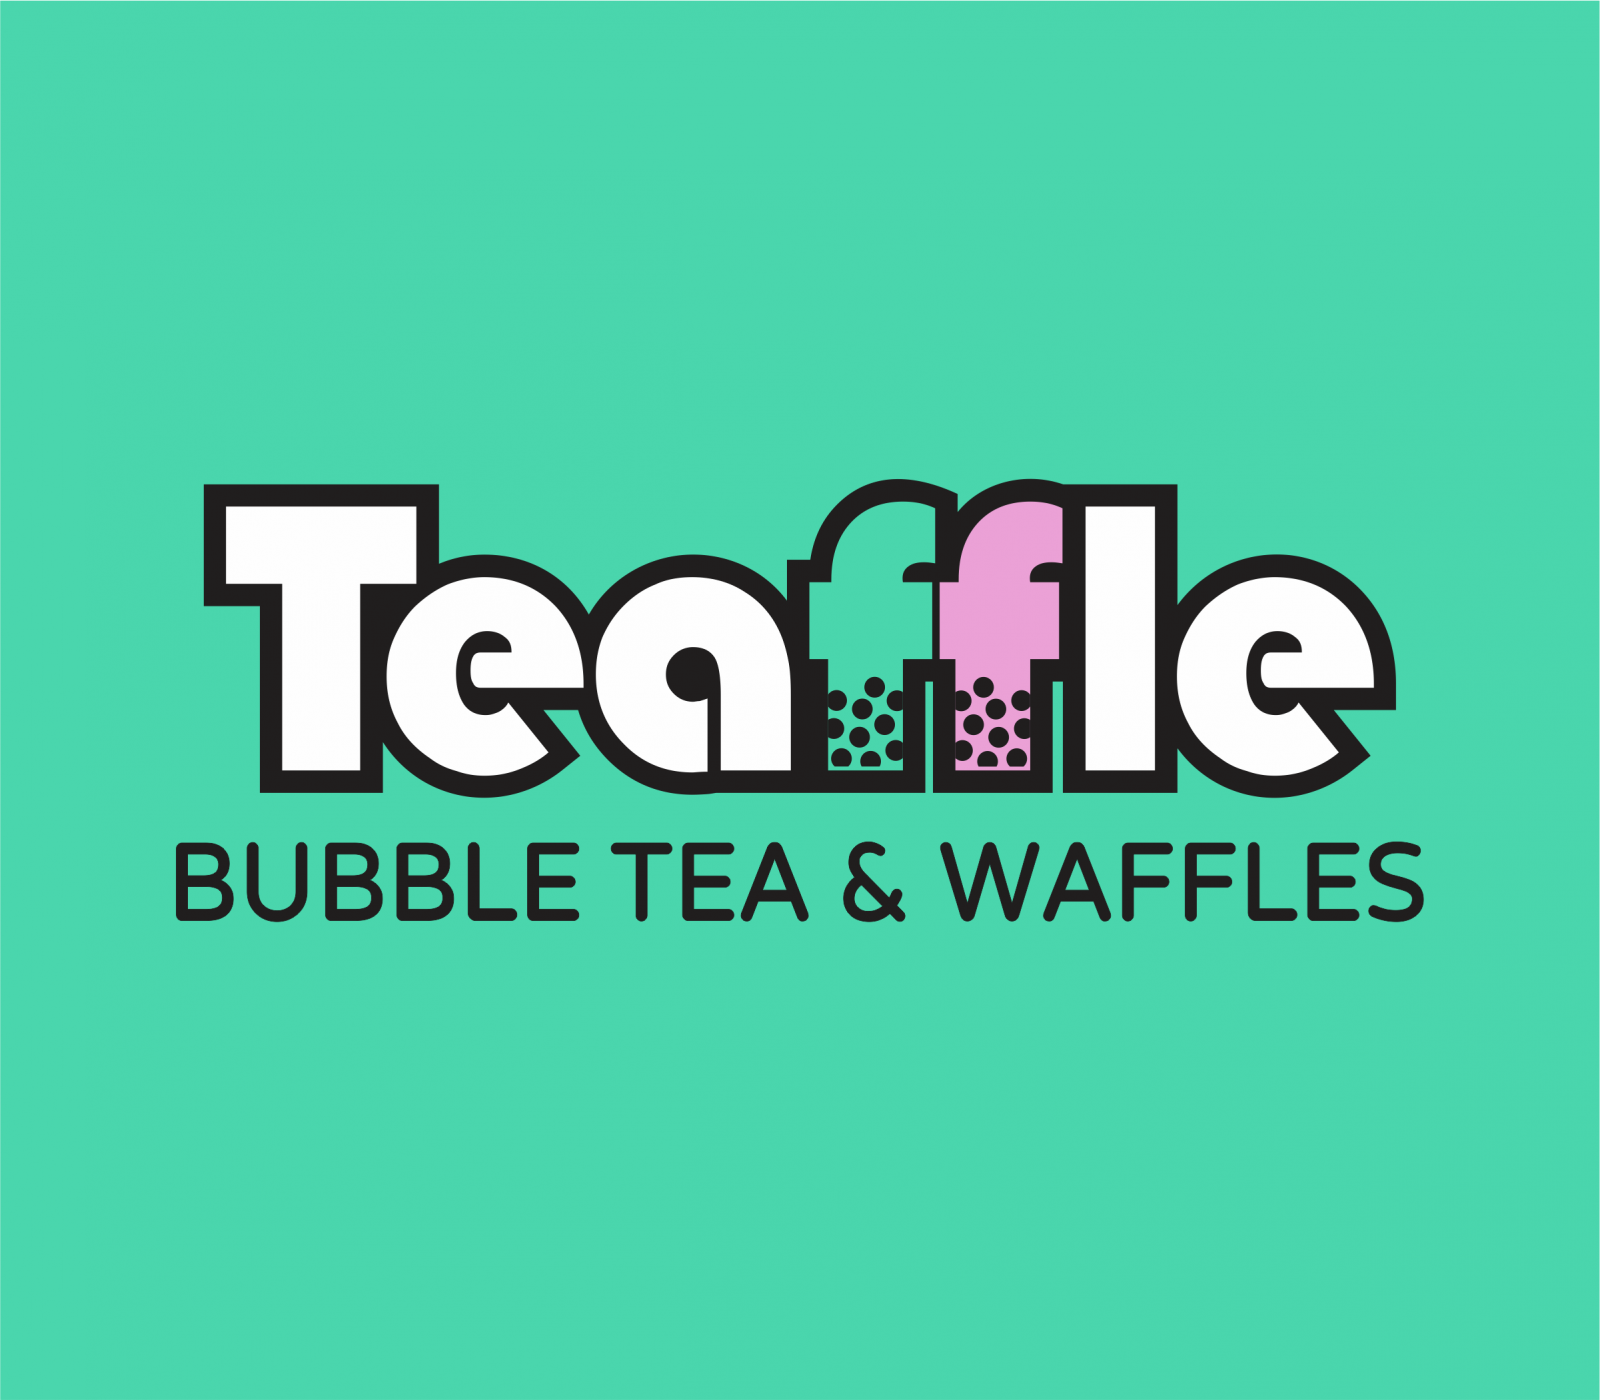 Teaffle Bubble Tea and Waffles